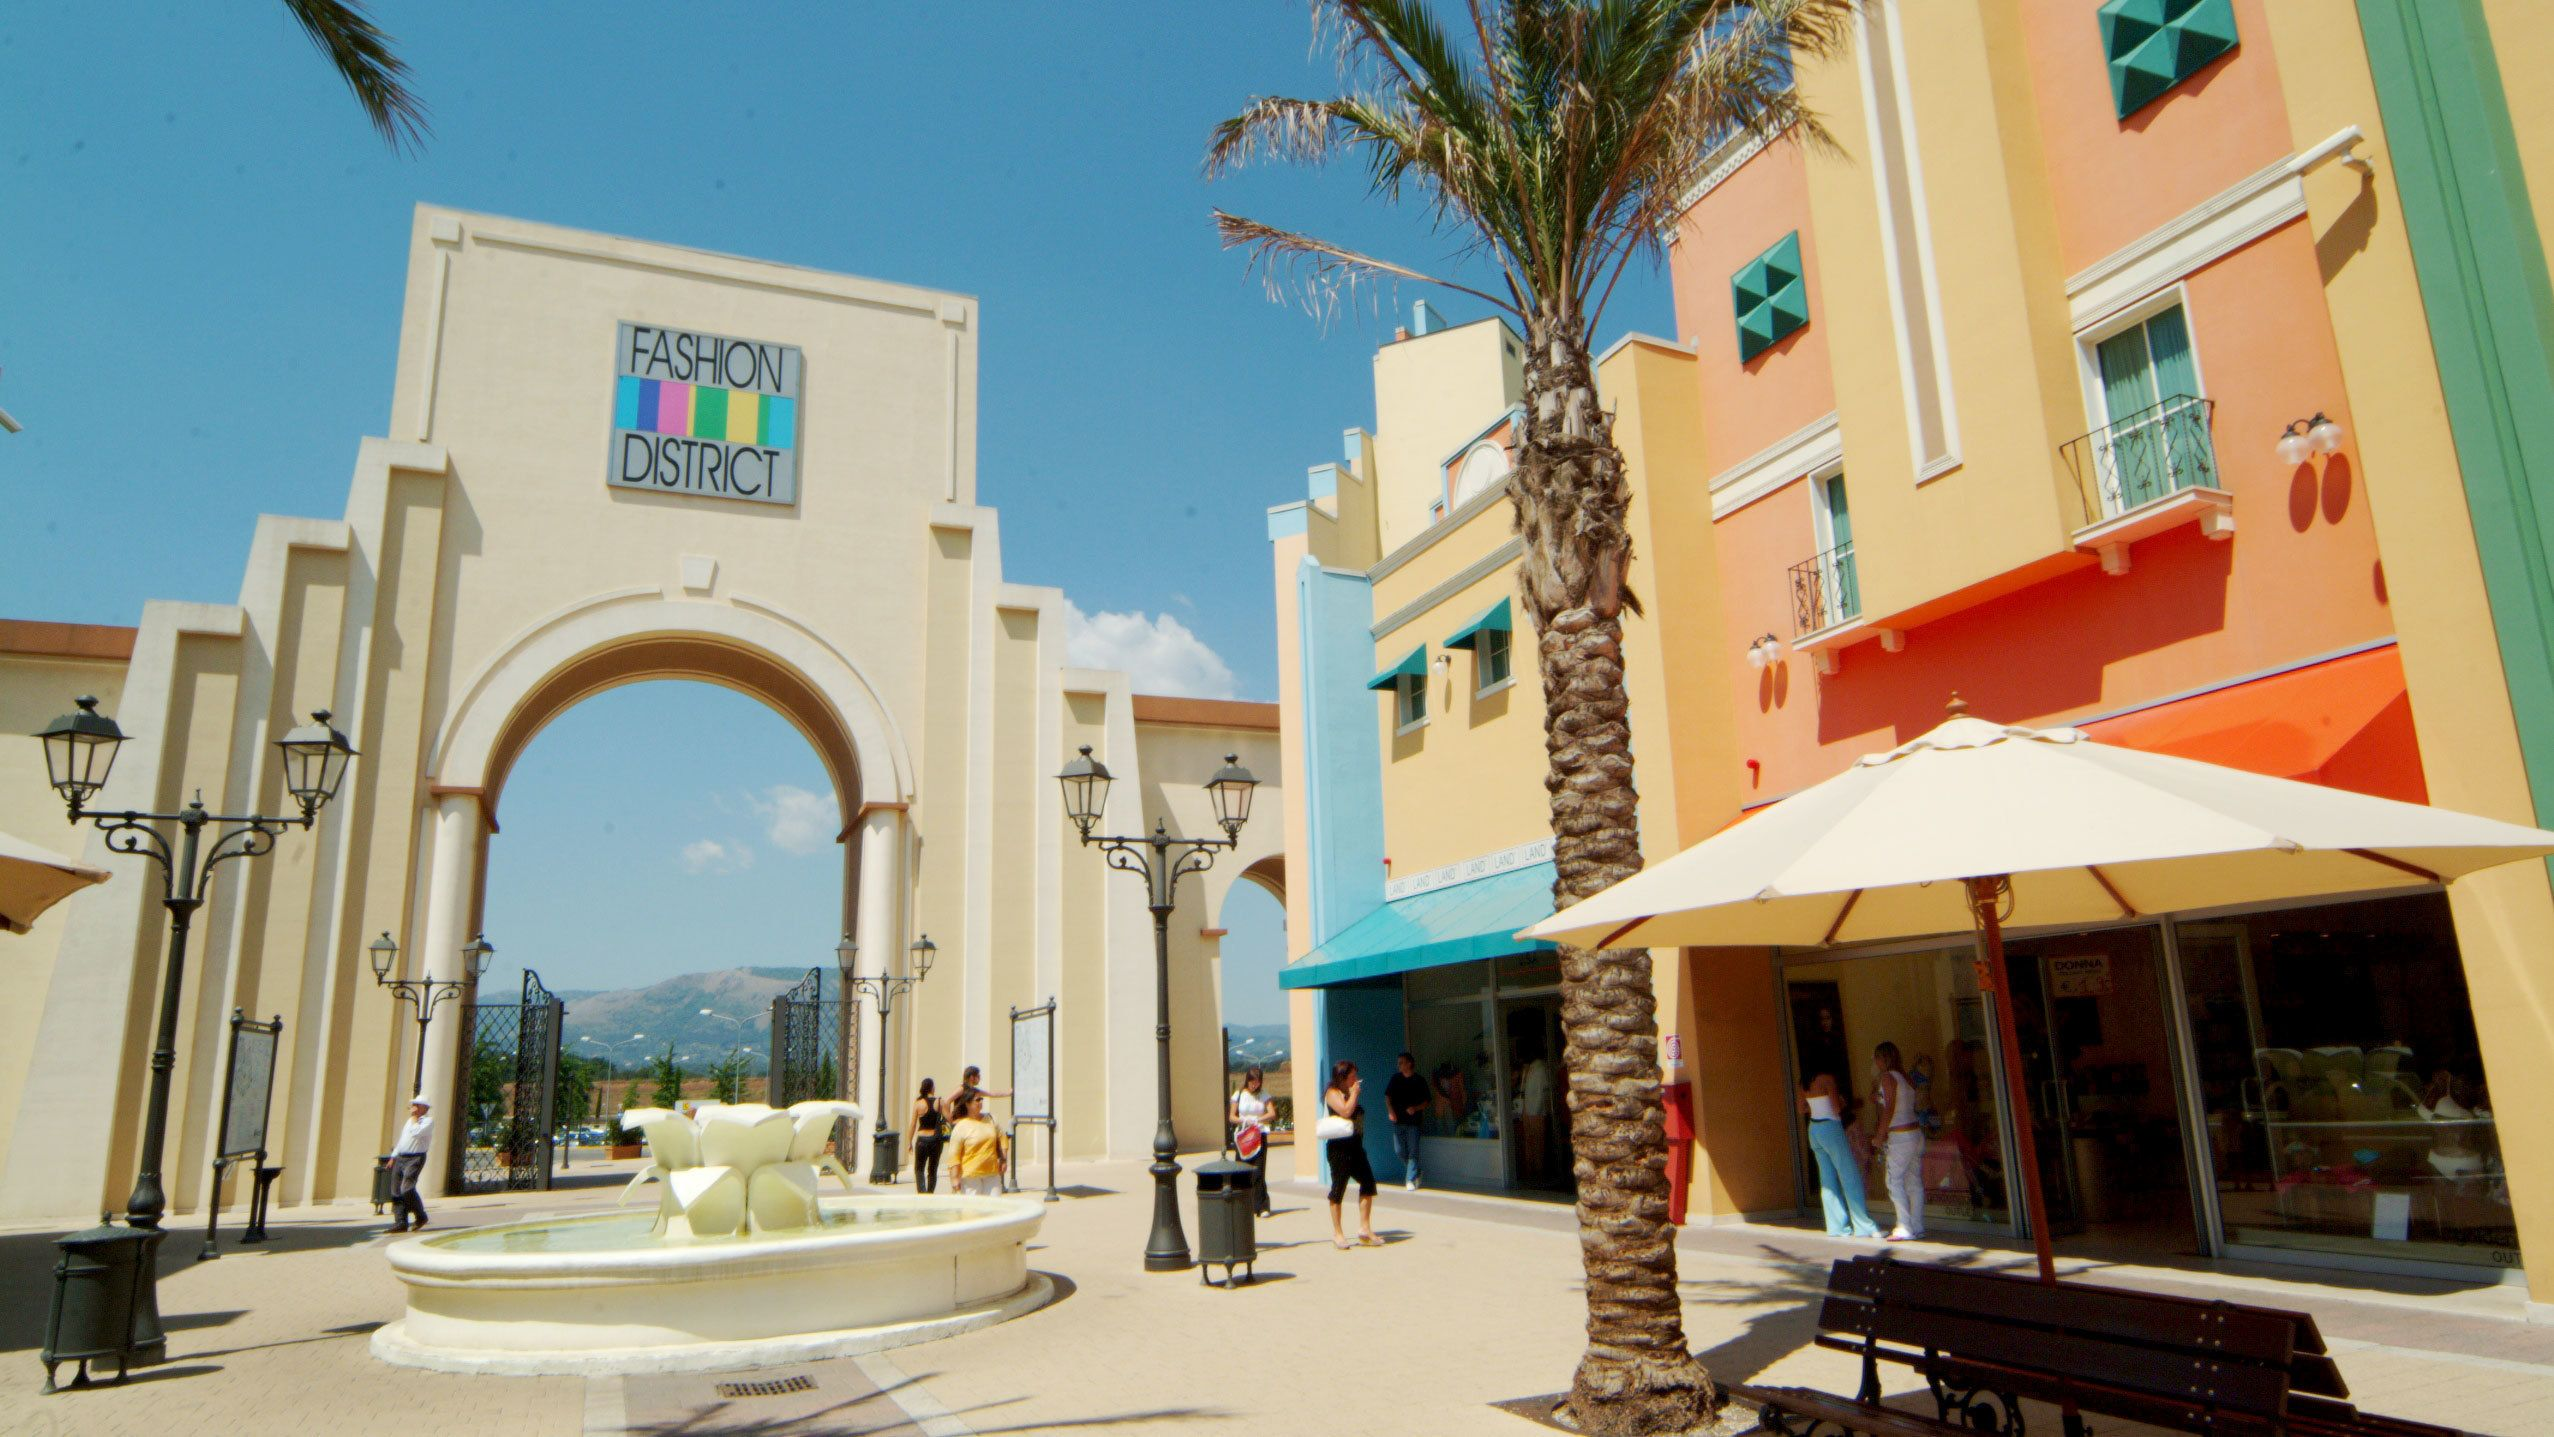 Rome's Shopping at Valmontone Outlet